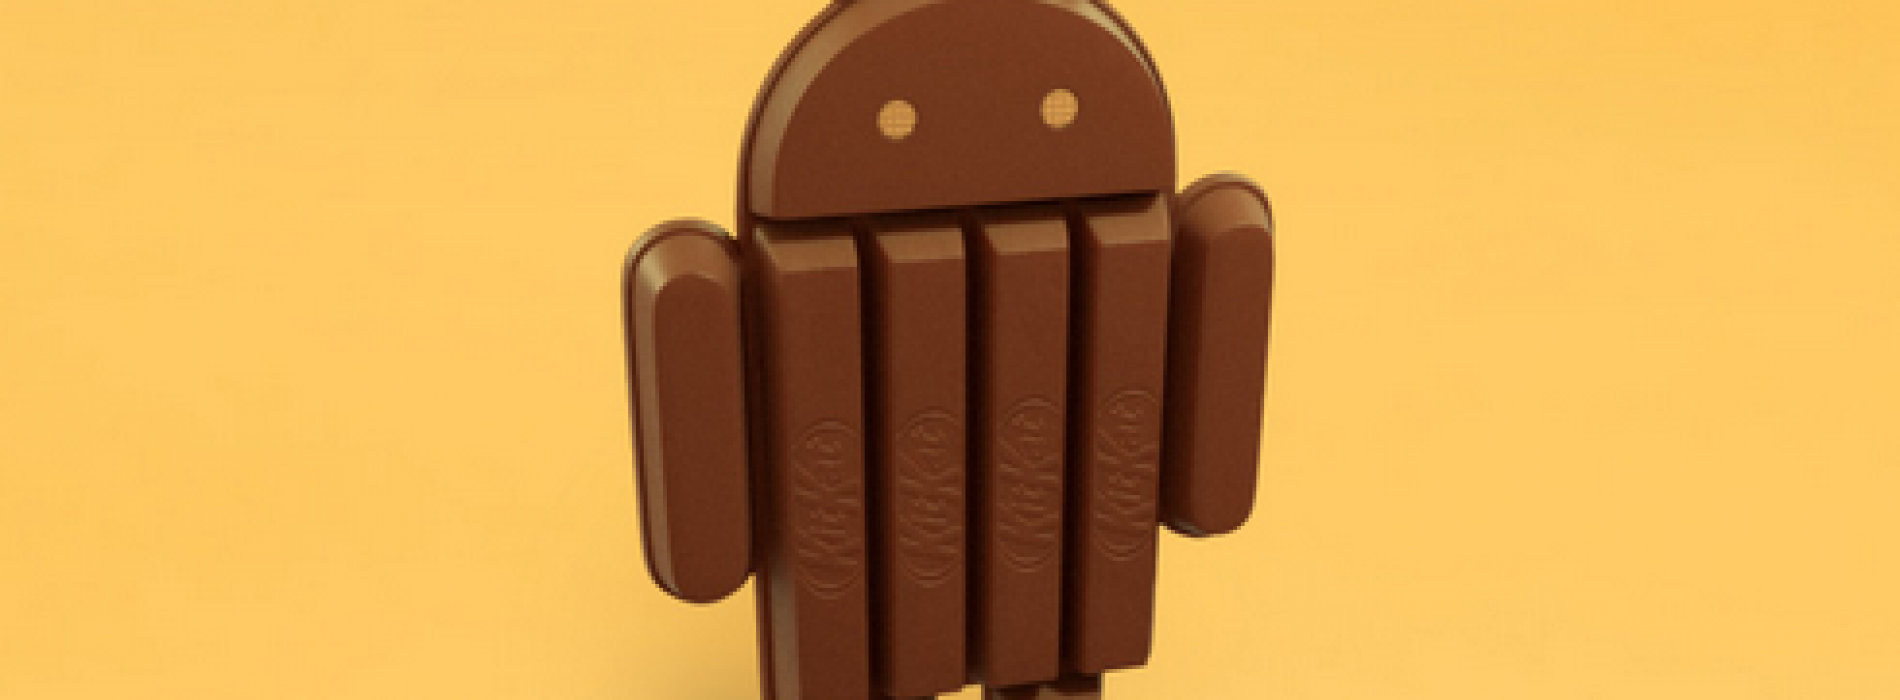 KitKat coming to Galaxy S4 and Note 3 in January